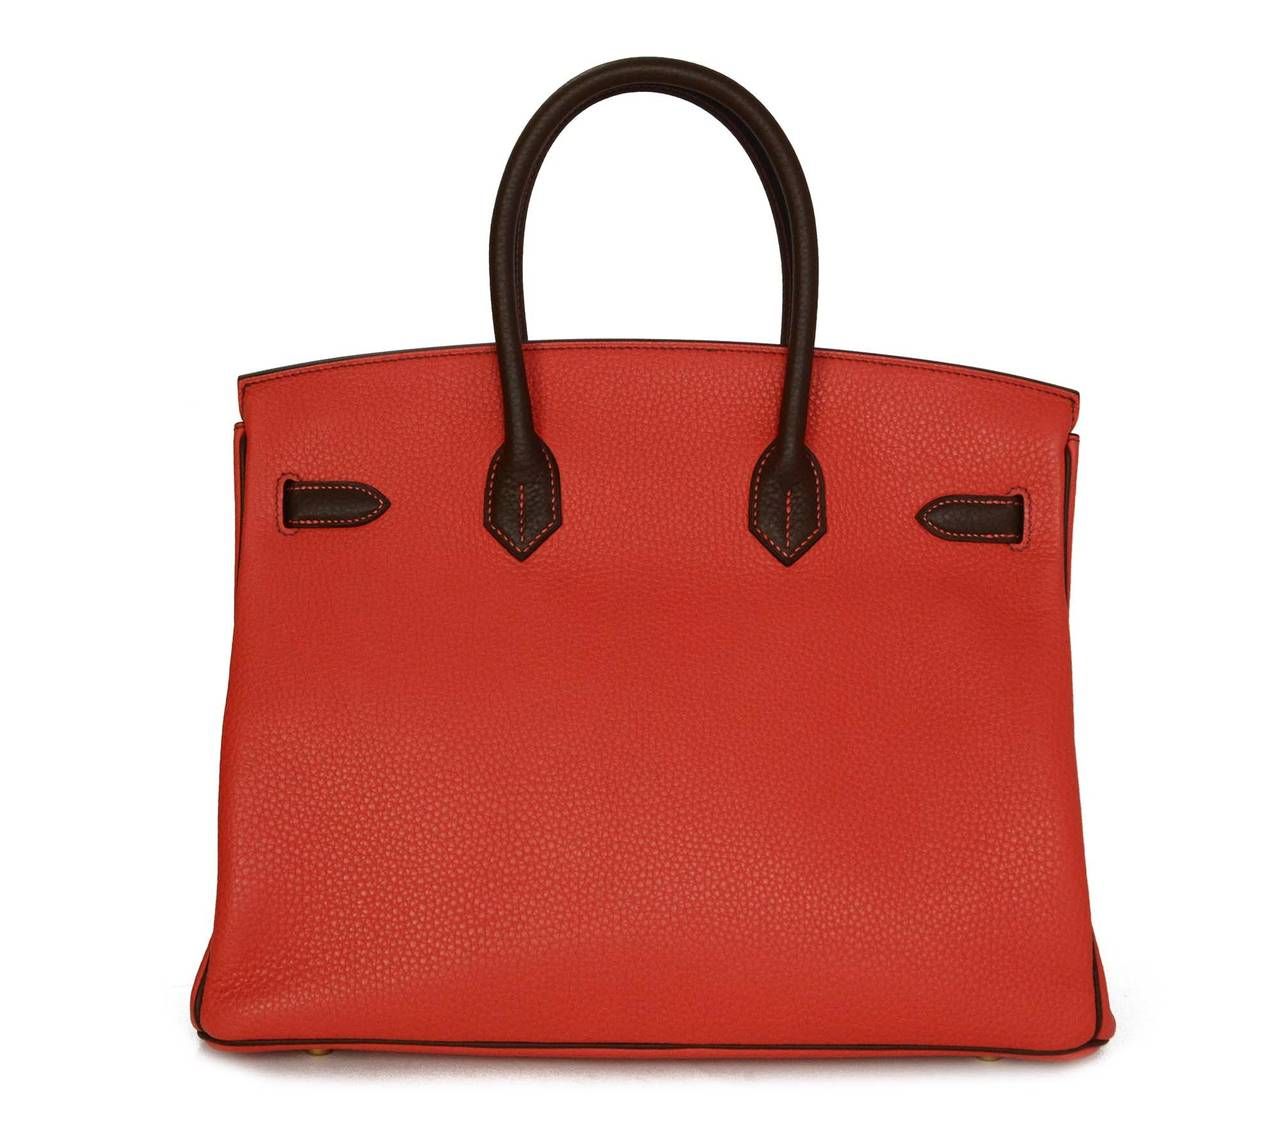 HERMES '15 SO Rouge Pivione/Cacao Red & Brown Togo Leather 35 cm Birkin Bag GHW 3